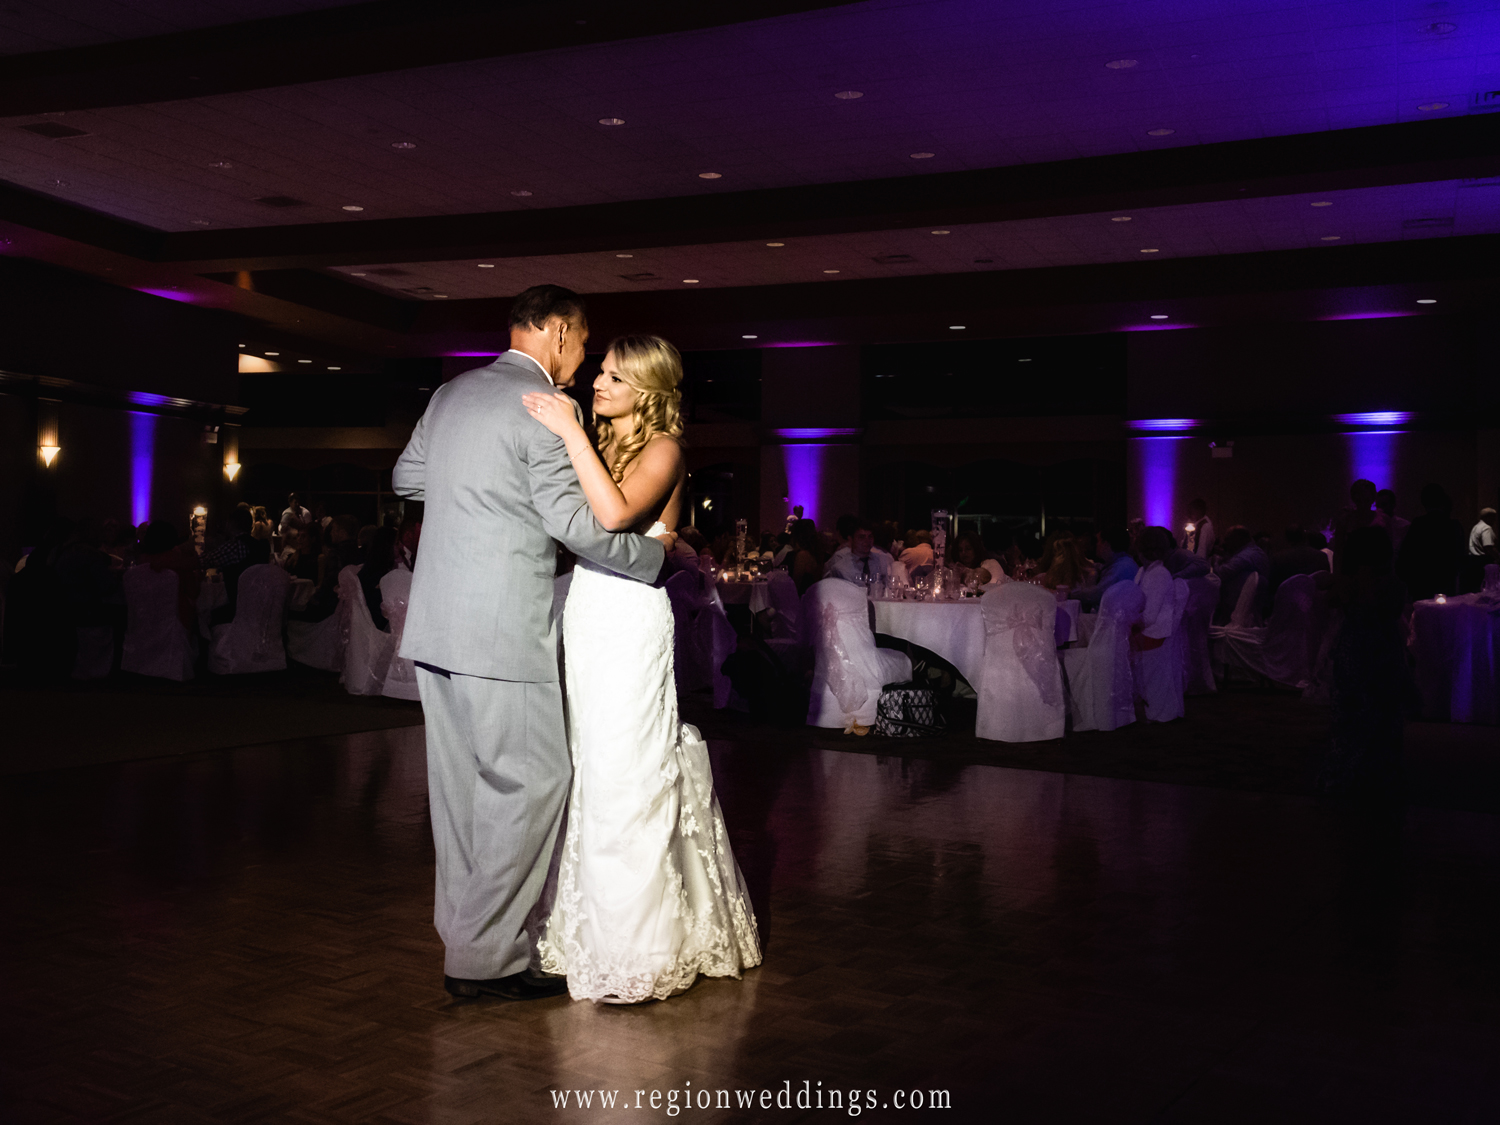 Father and daughter on the dance floor at the Halls of St. George.